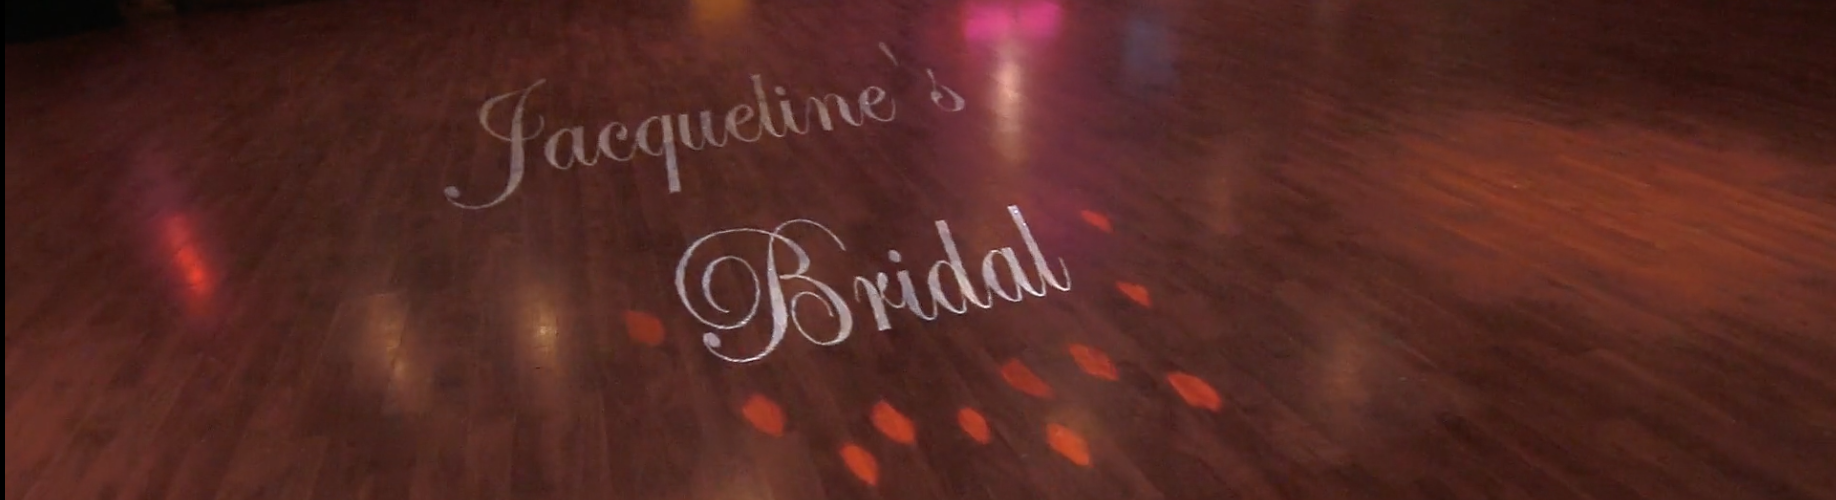 Jacqueline's Bridal Wedding Rewind Video